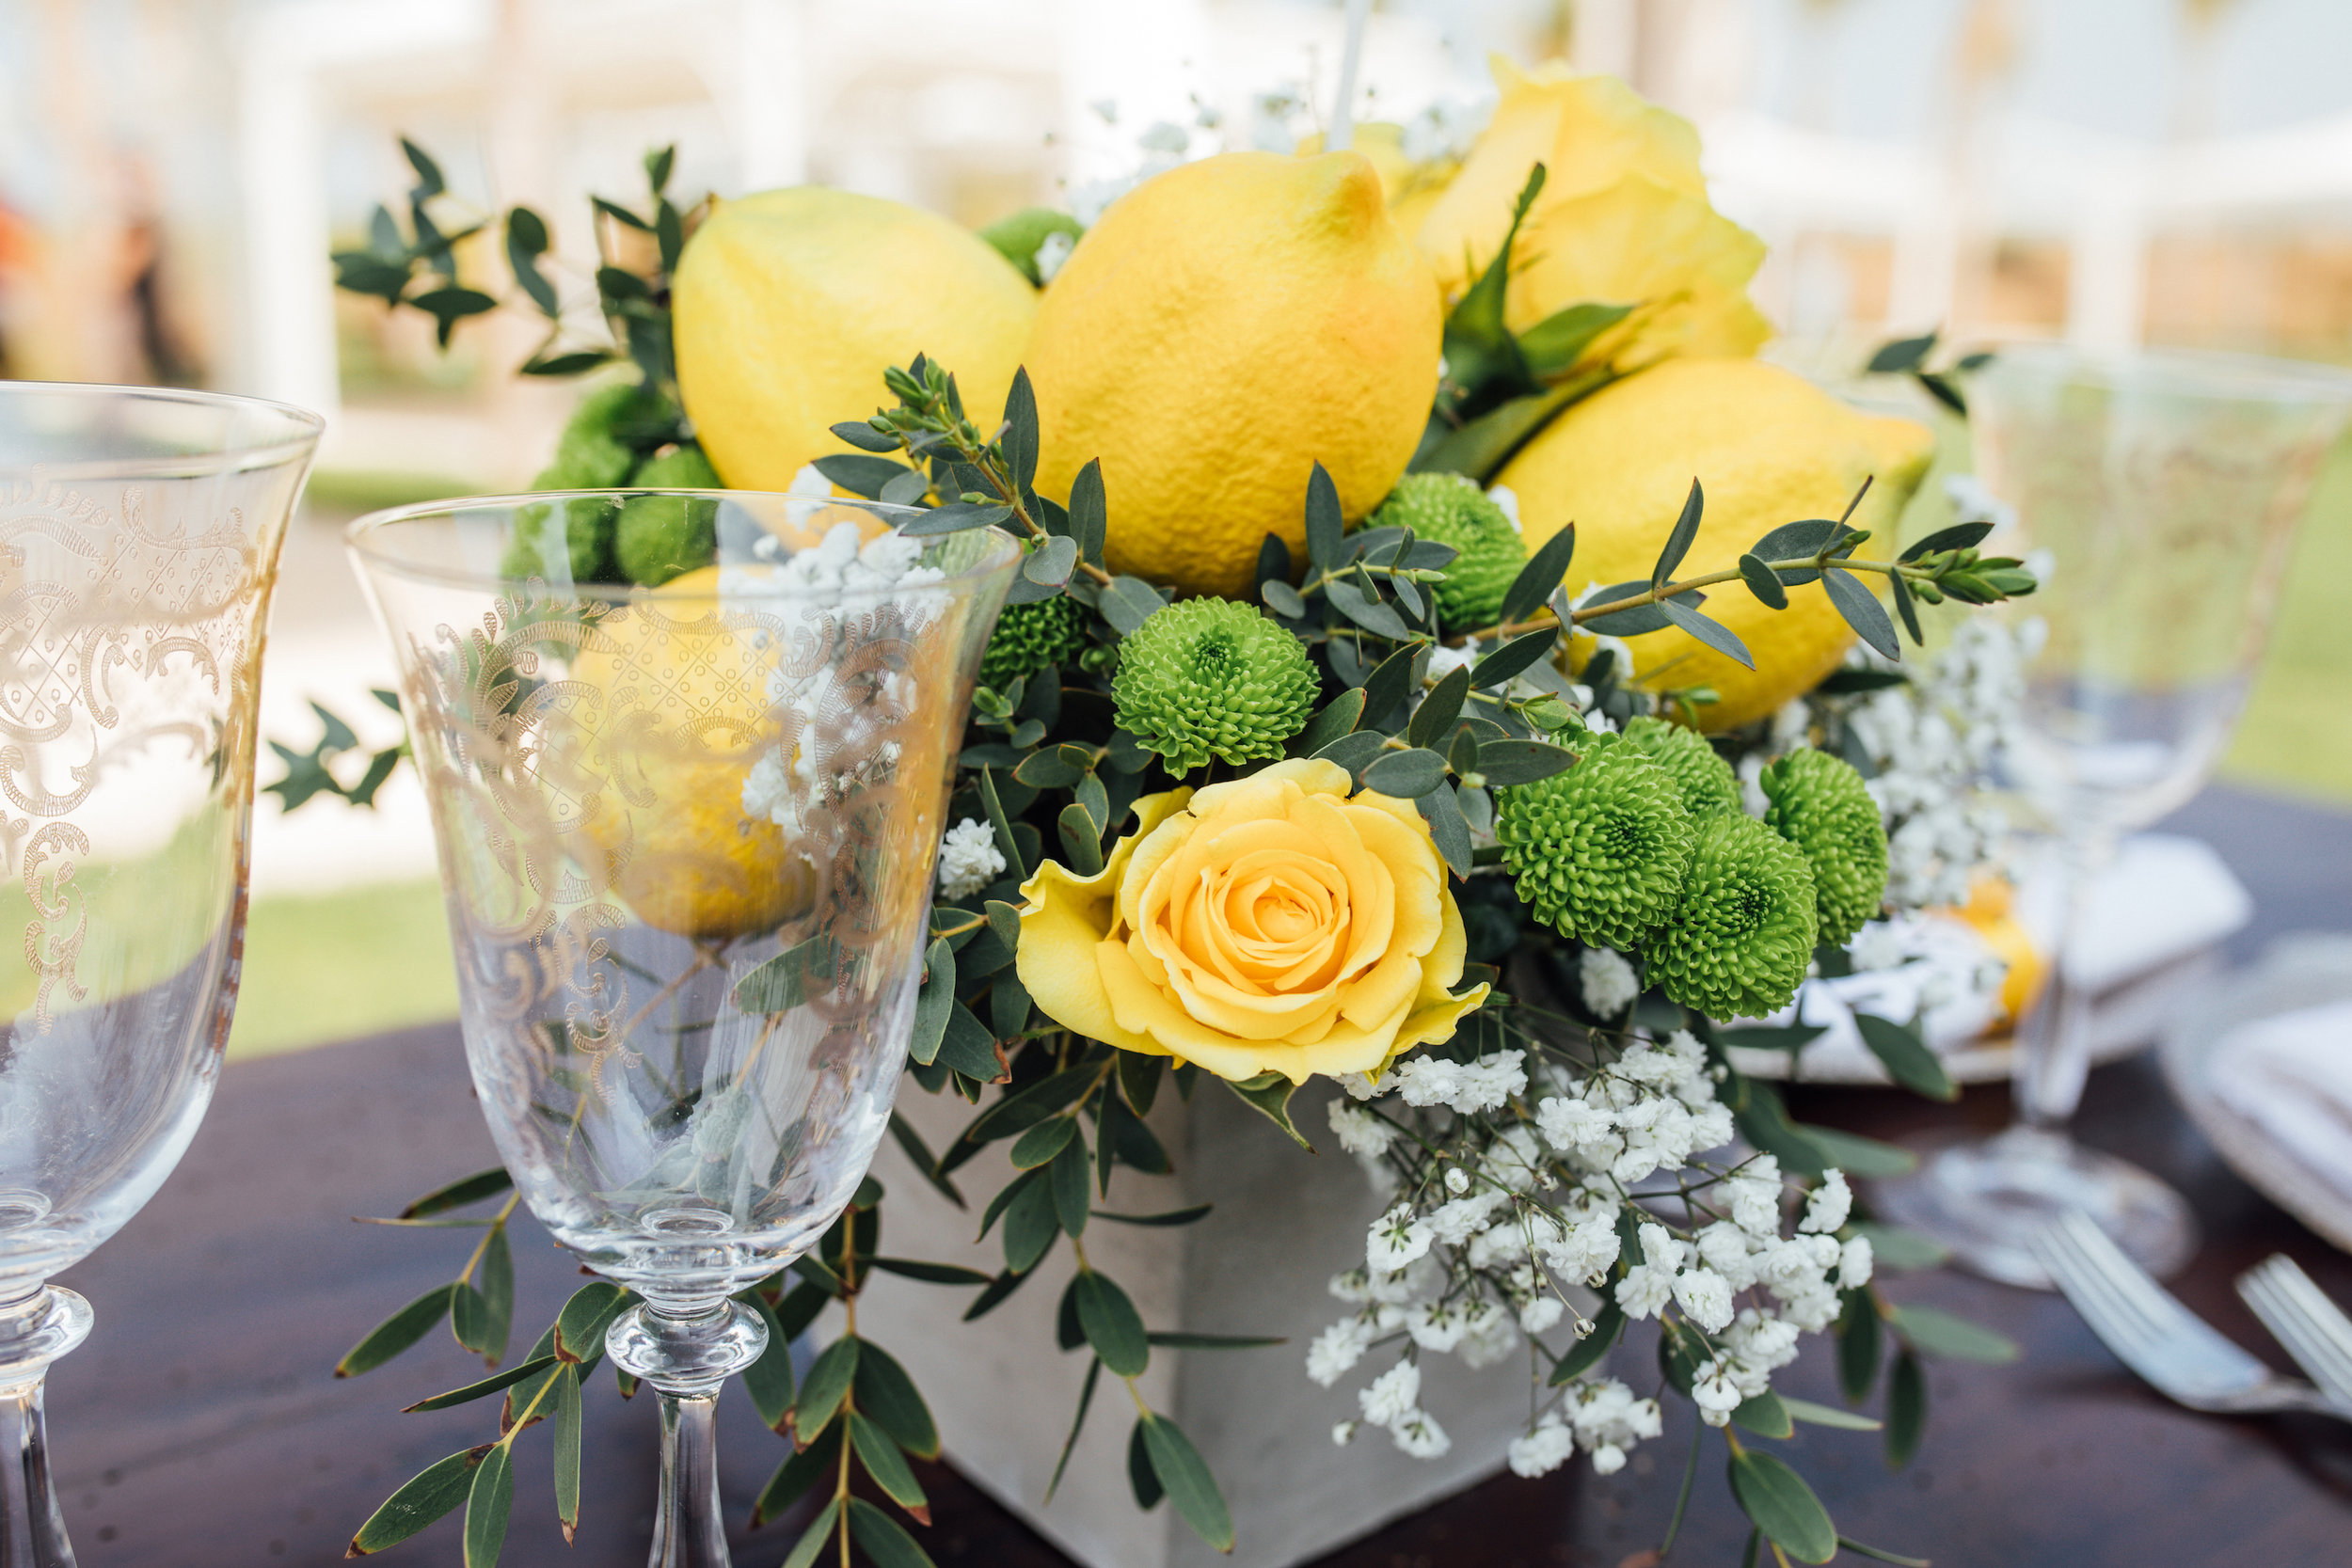 Garden Wedding Inspiration From Rome Italy With A Lemon Yellow Theme